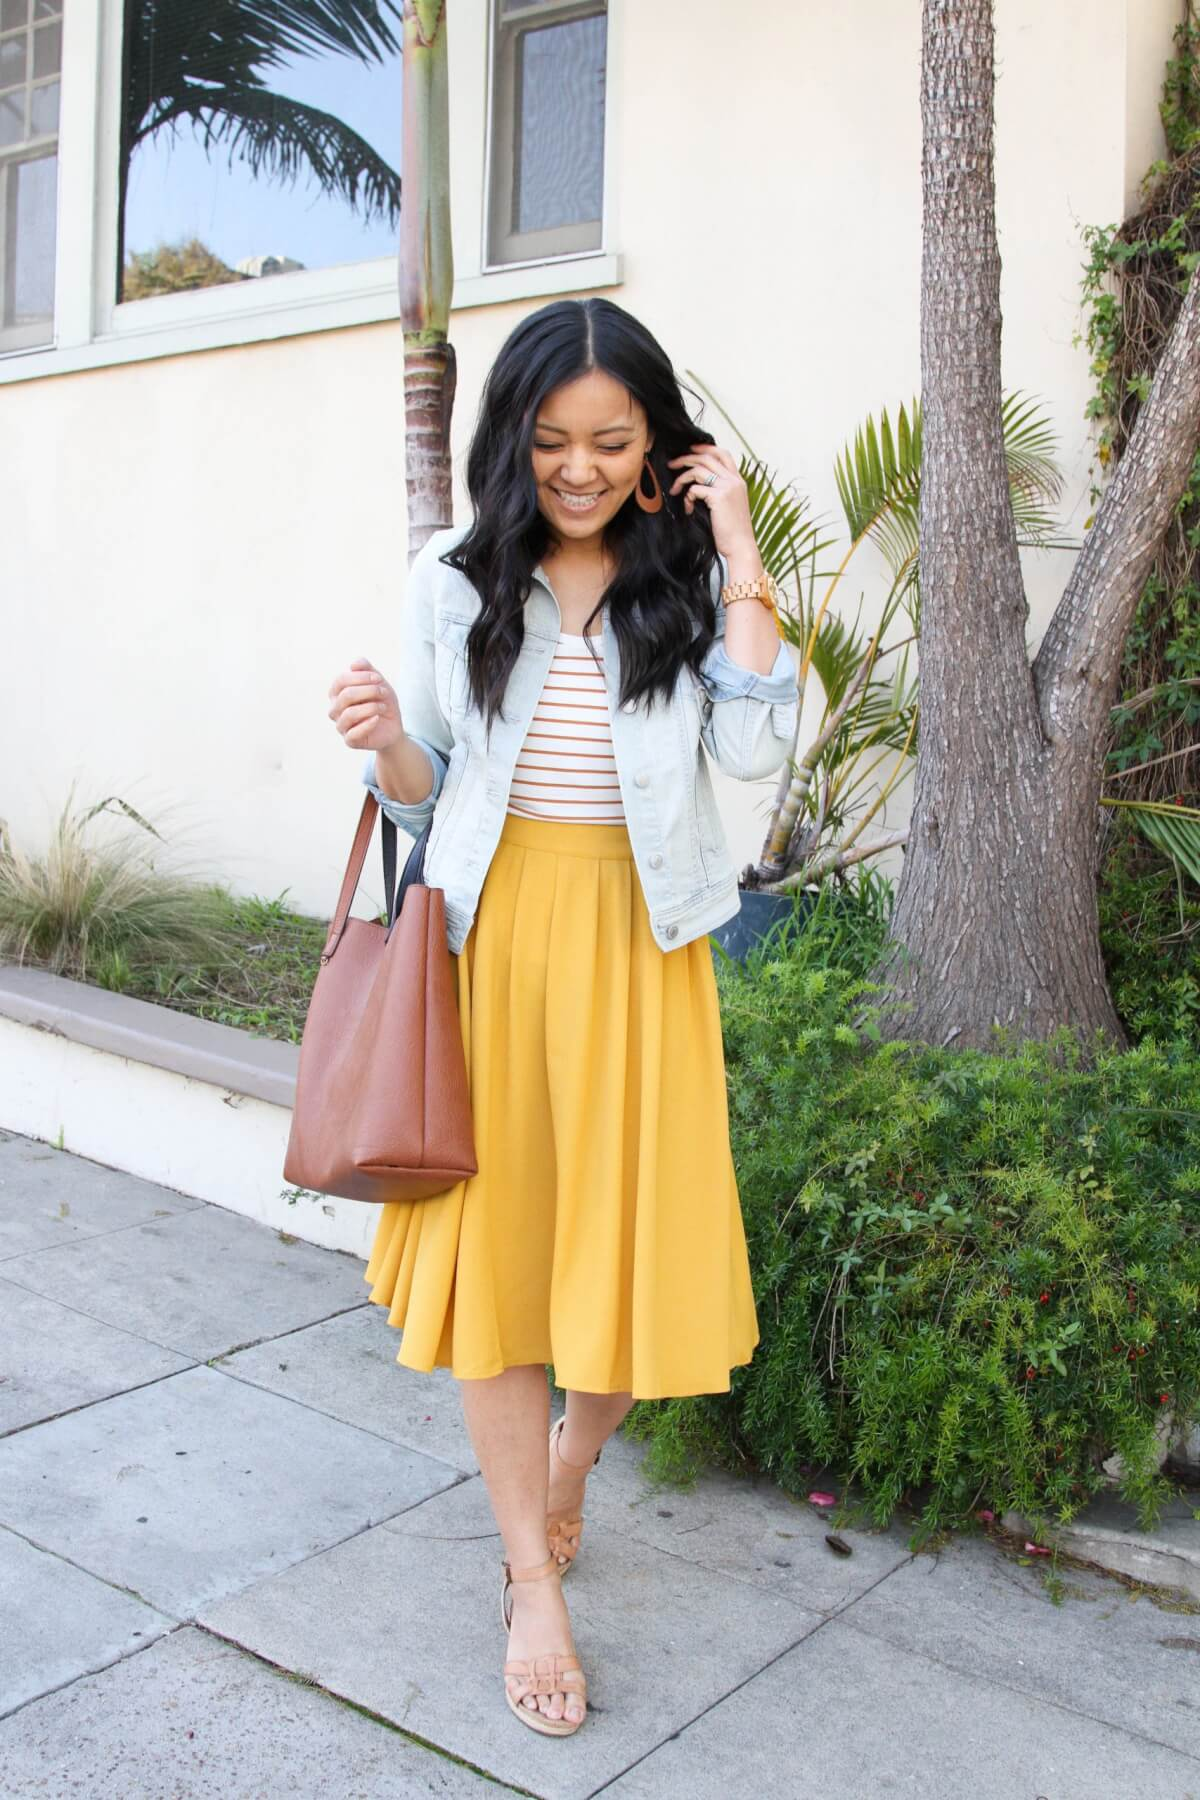 denim jacket outfit: denim jacket + striped tee + yellow skirt + nude sandals + tan earrings + brown tote